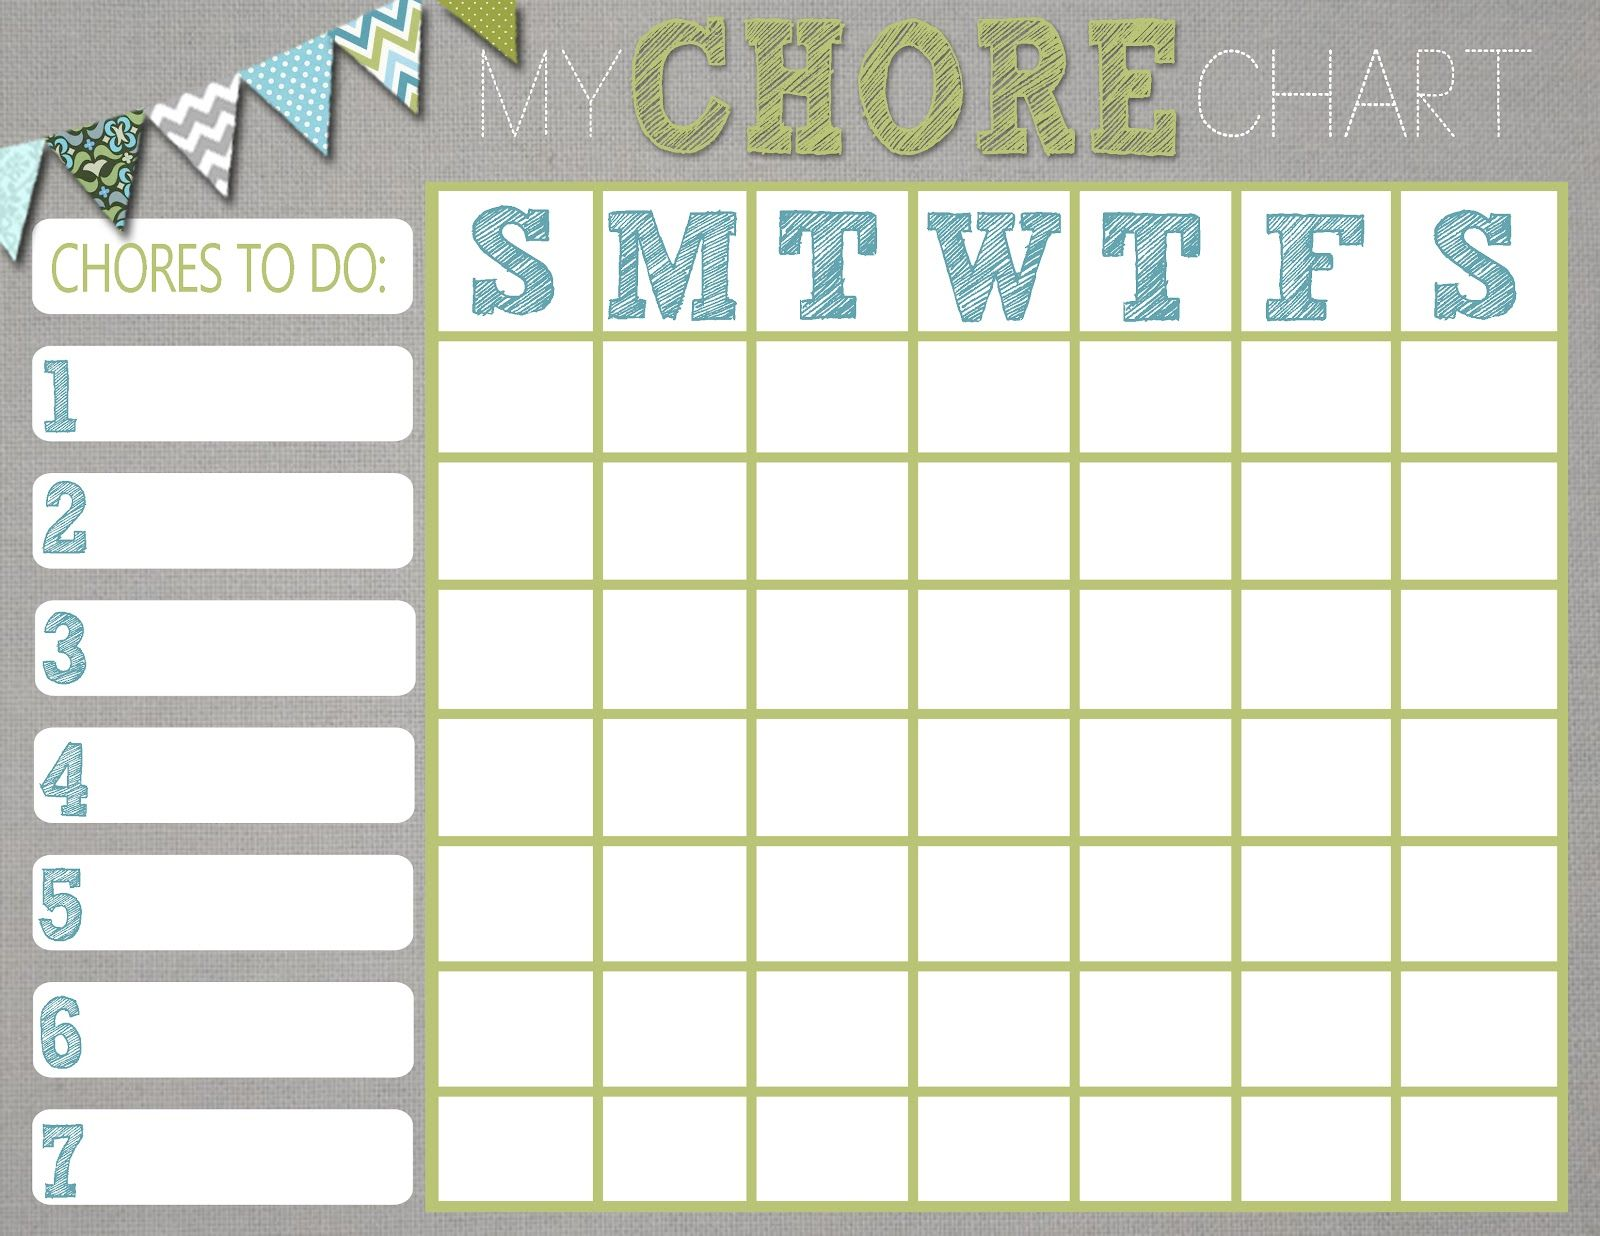 17 Best ideas about Printable Chore Chart on Pinterest | Chore ...